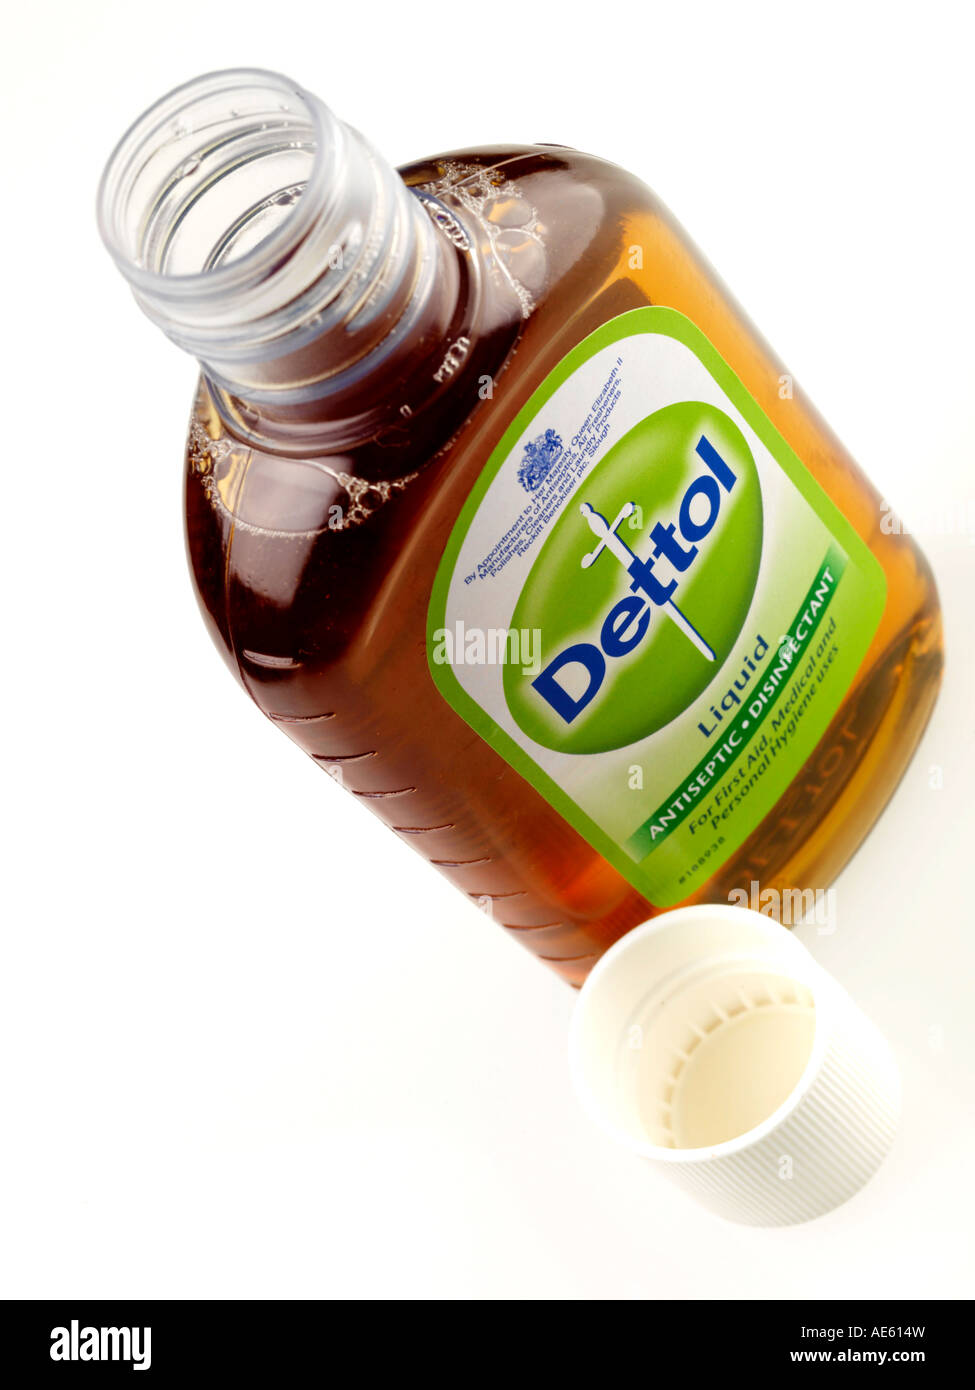 Dettol Disinfectant - Stock Image